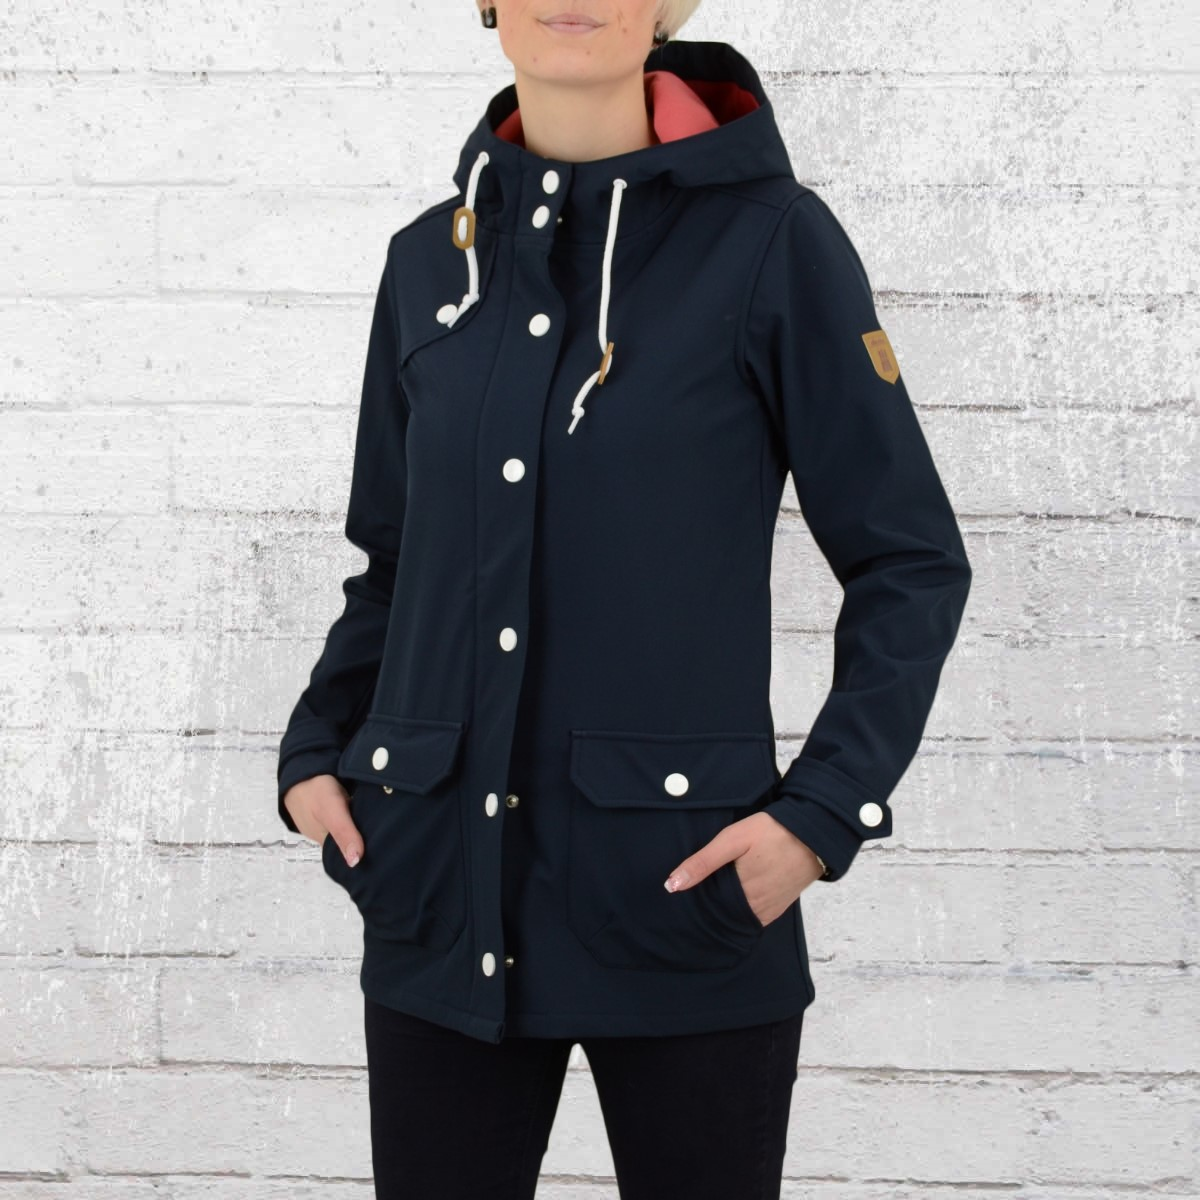 Navy Order Ladies Jacket NowDerbe Peninsula Rose Softshell lKT1Jc3F